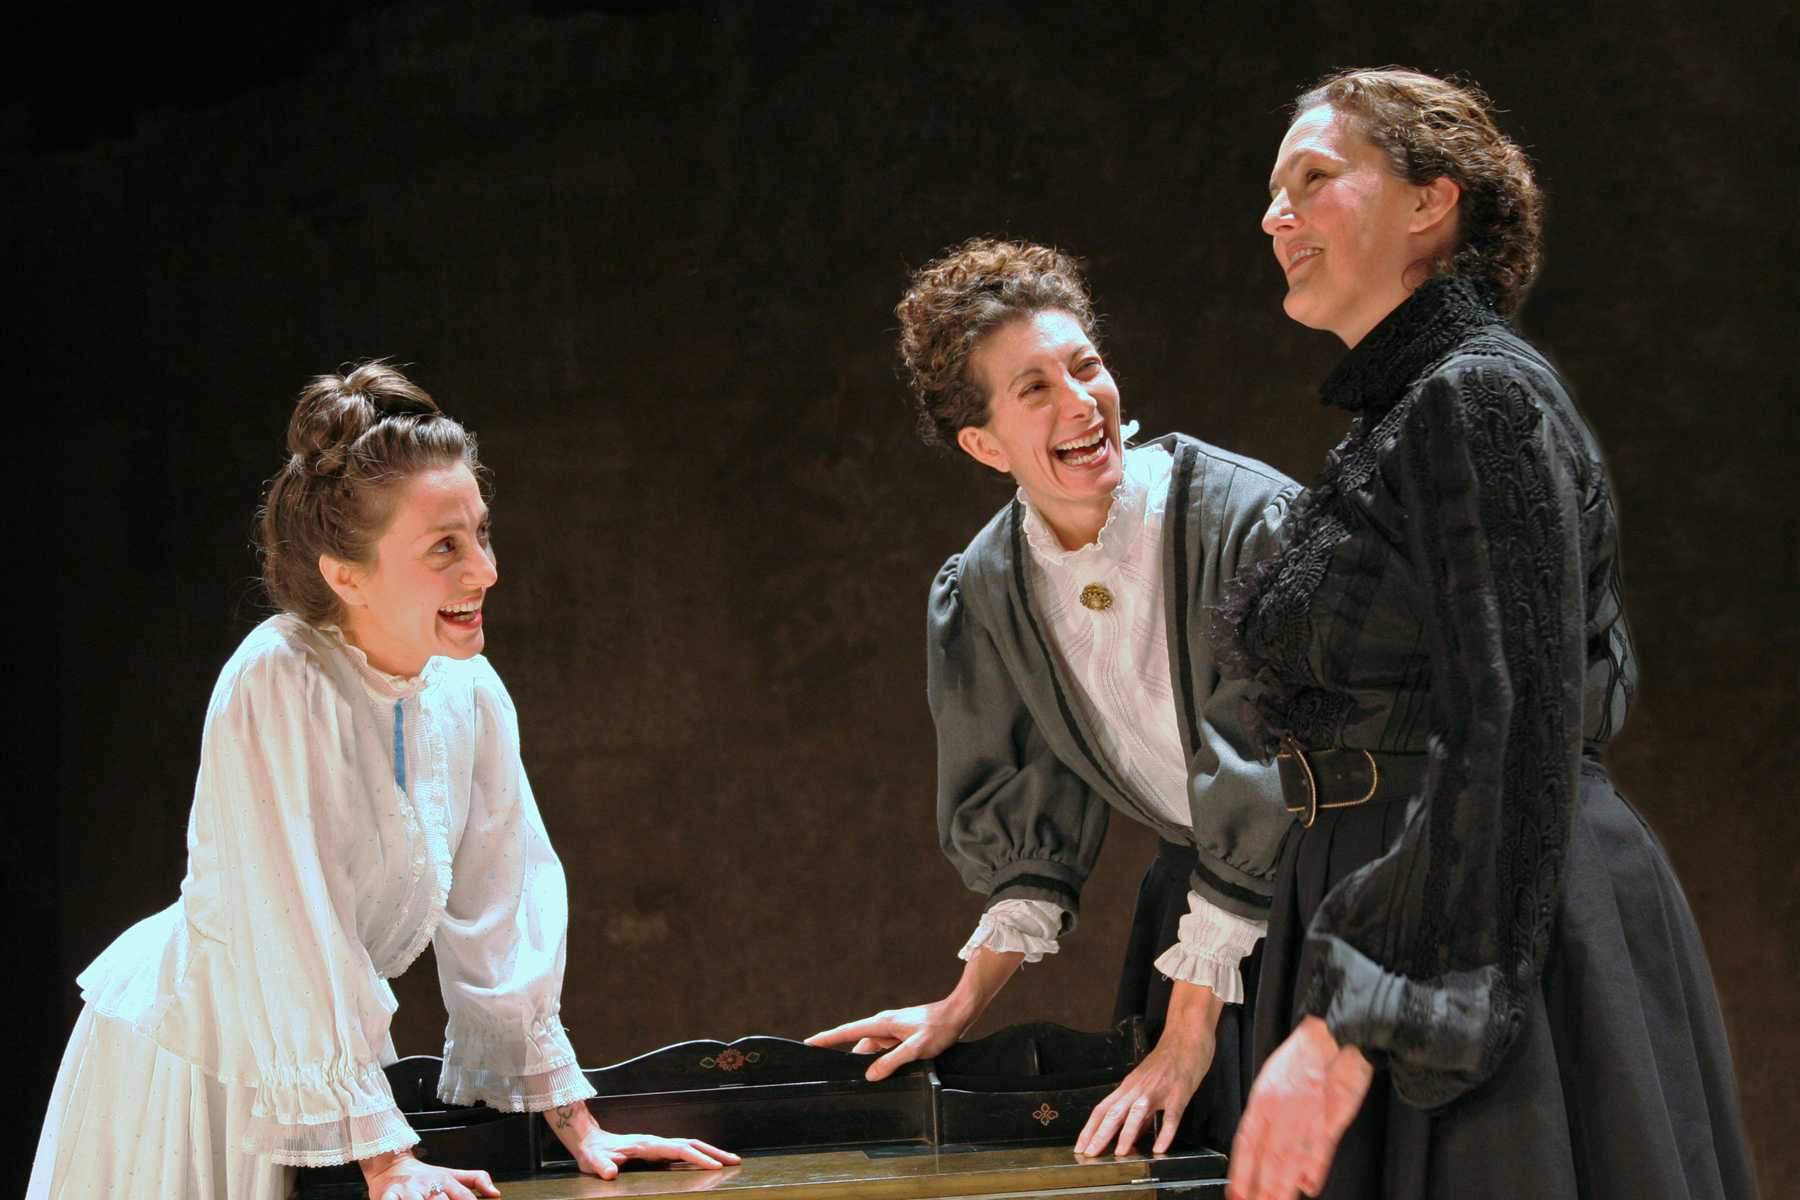 """Douglas Morrison Theater's Miriam Ani, Kate Dunlop Tomatis, and Daria Hepps rehearse earlier this year for """"Three Sisters."""""""